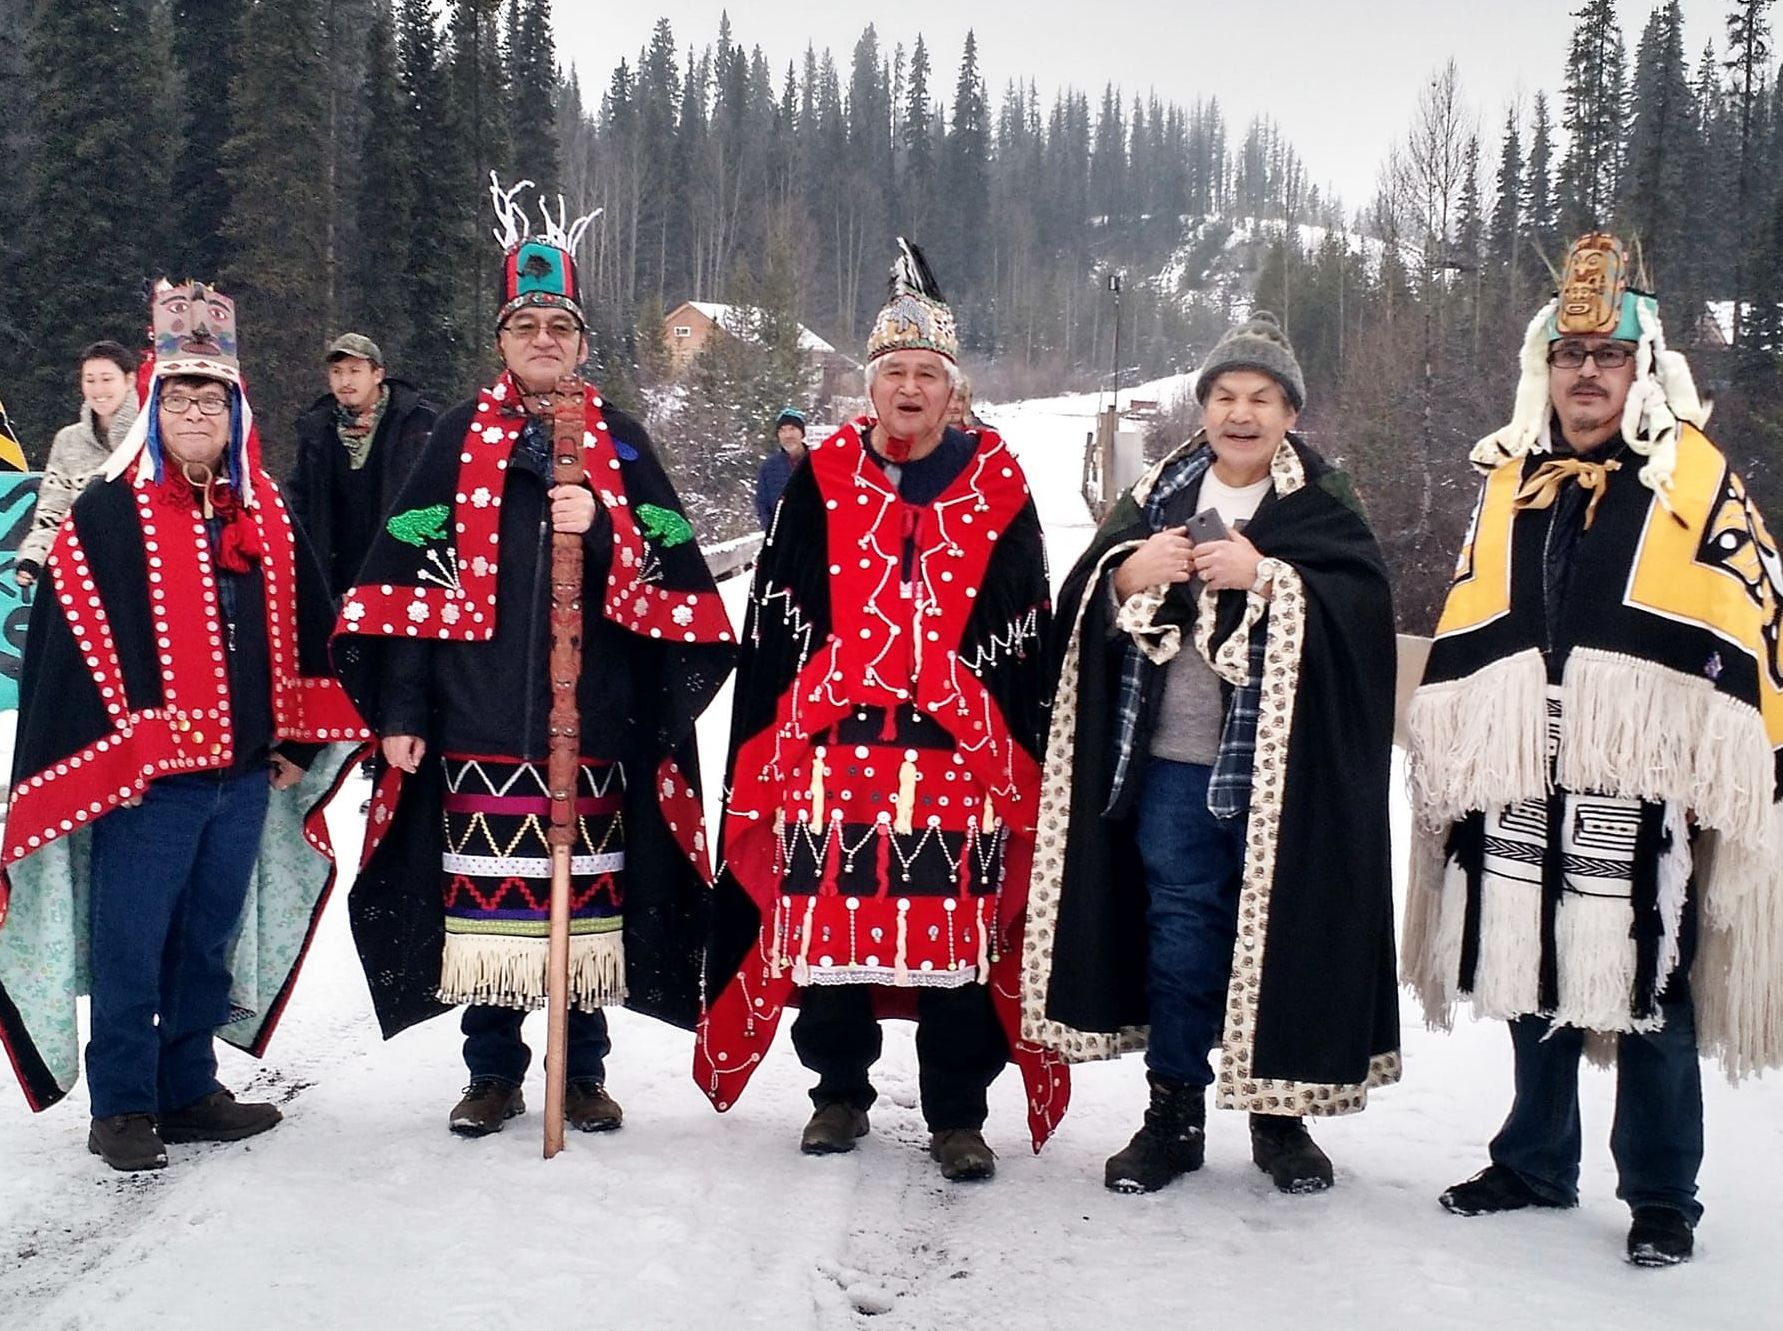 Dini Ze' (Highest Hereditary Chiefs) of the Wet'suwet'en Nation, including hereditary Chief Na'Moks (2nd left), visit Unist'ot'en Camp to show their support.